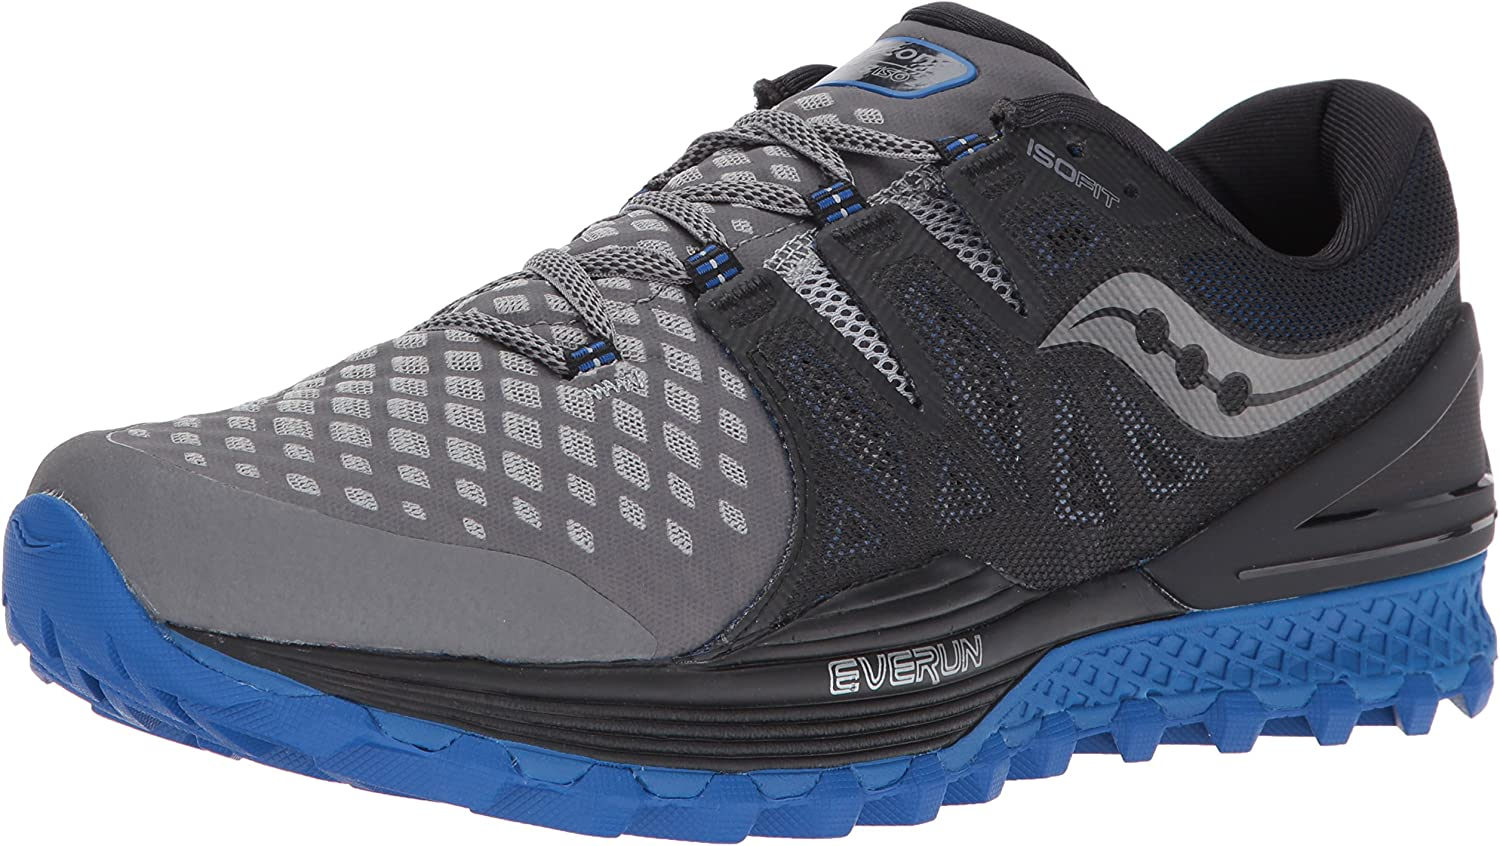 Saucony Men's Xodus 2 Houston Mall Running-Shoes Iso Max 54% OFF